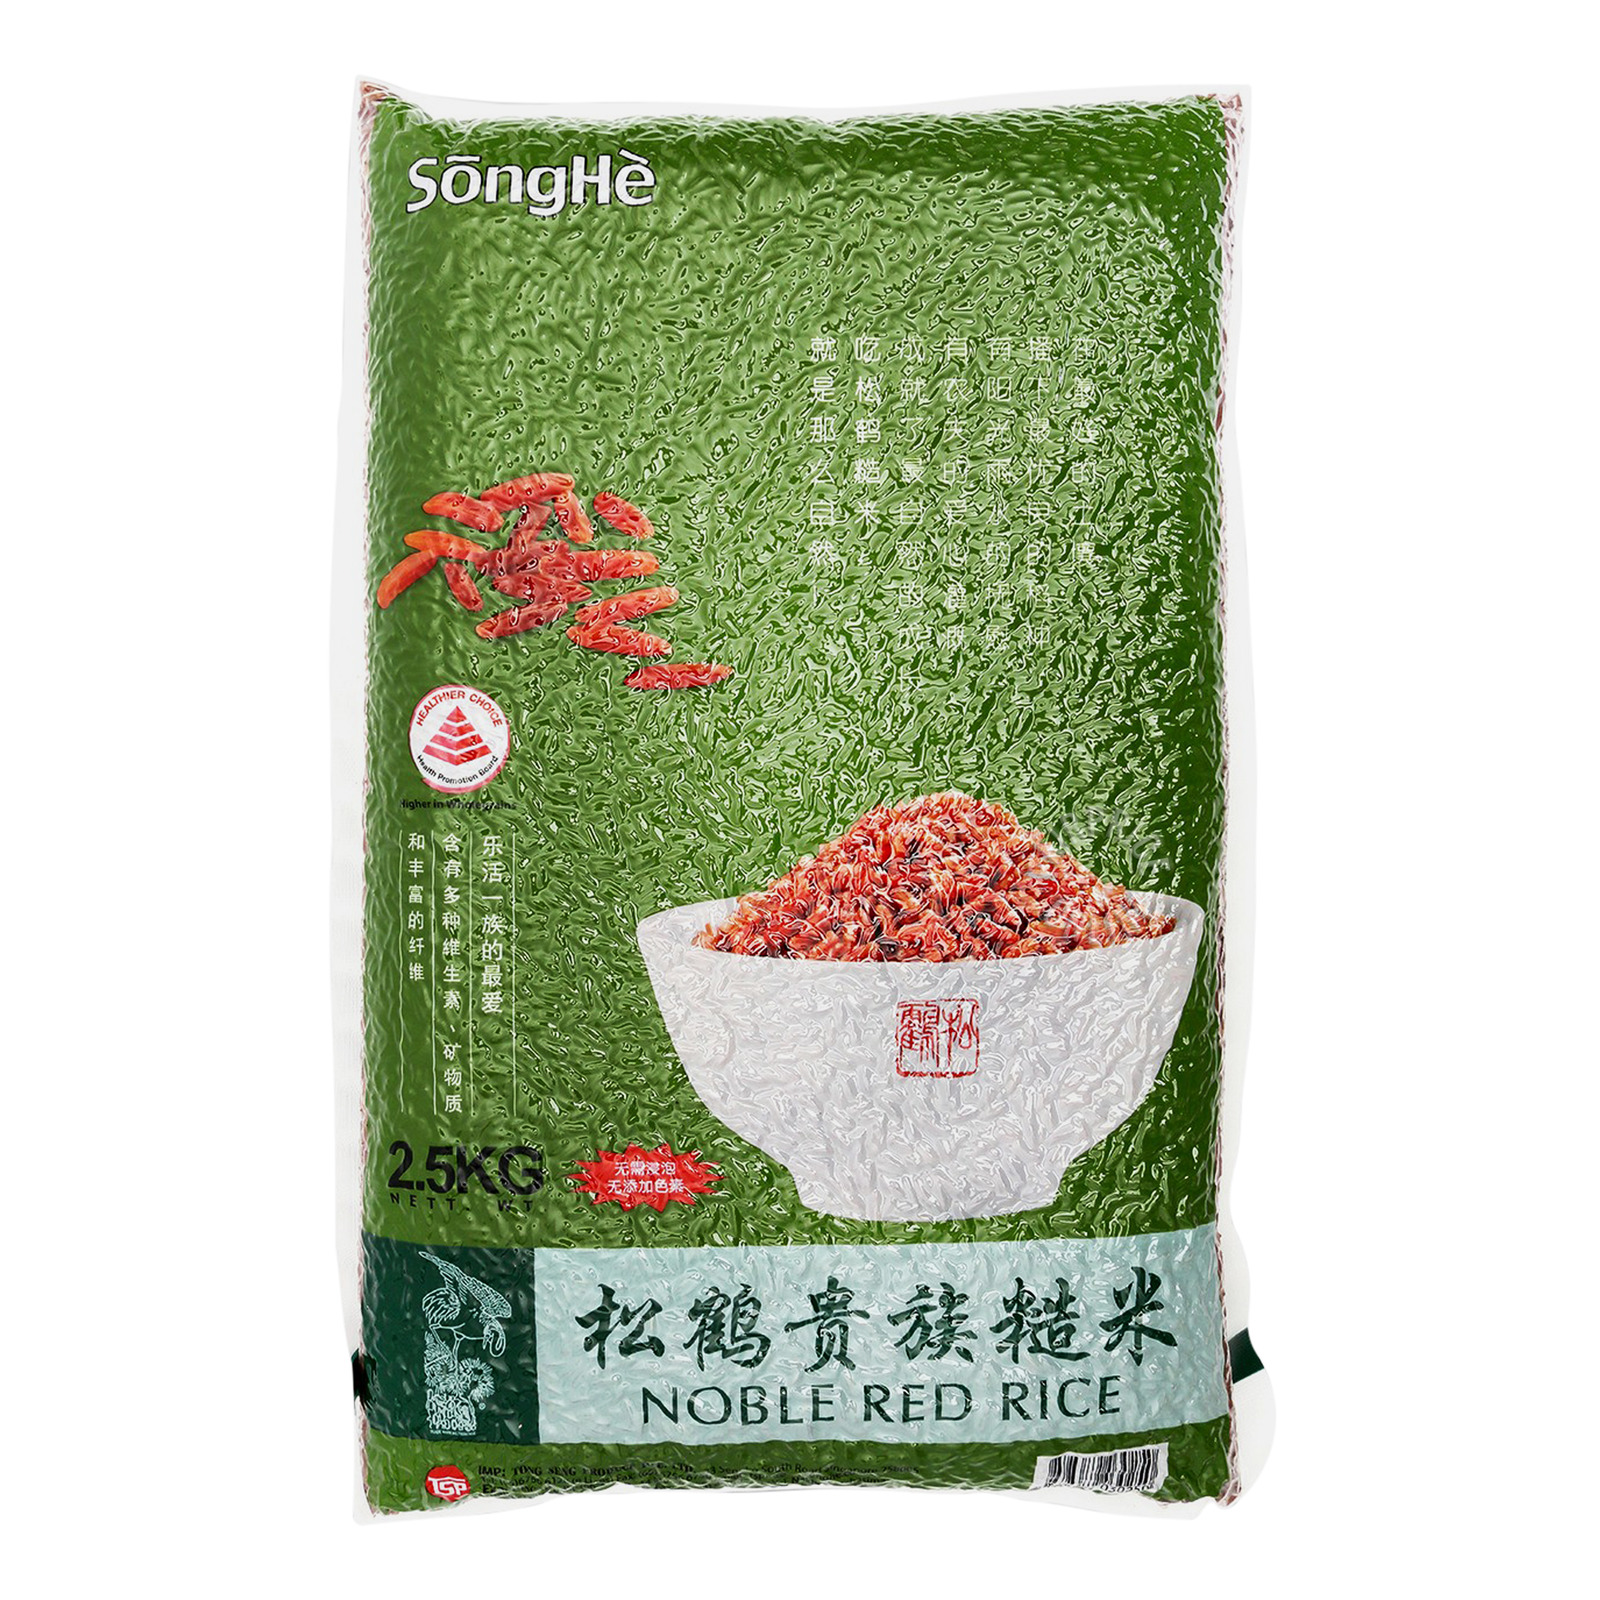 Songhe Noble Red Rice